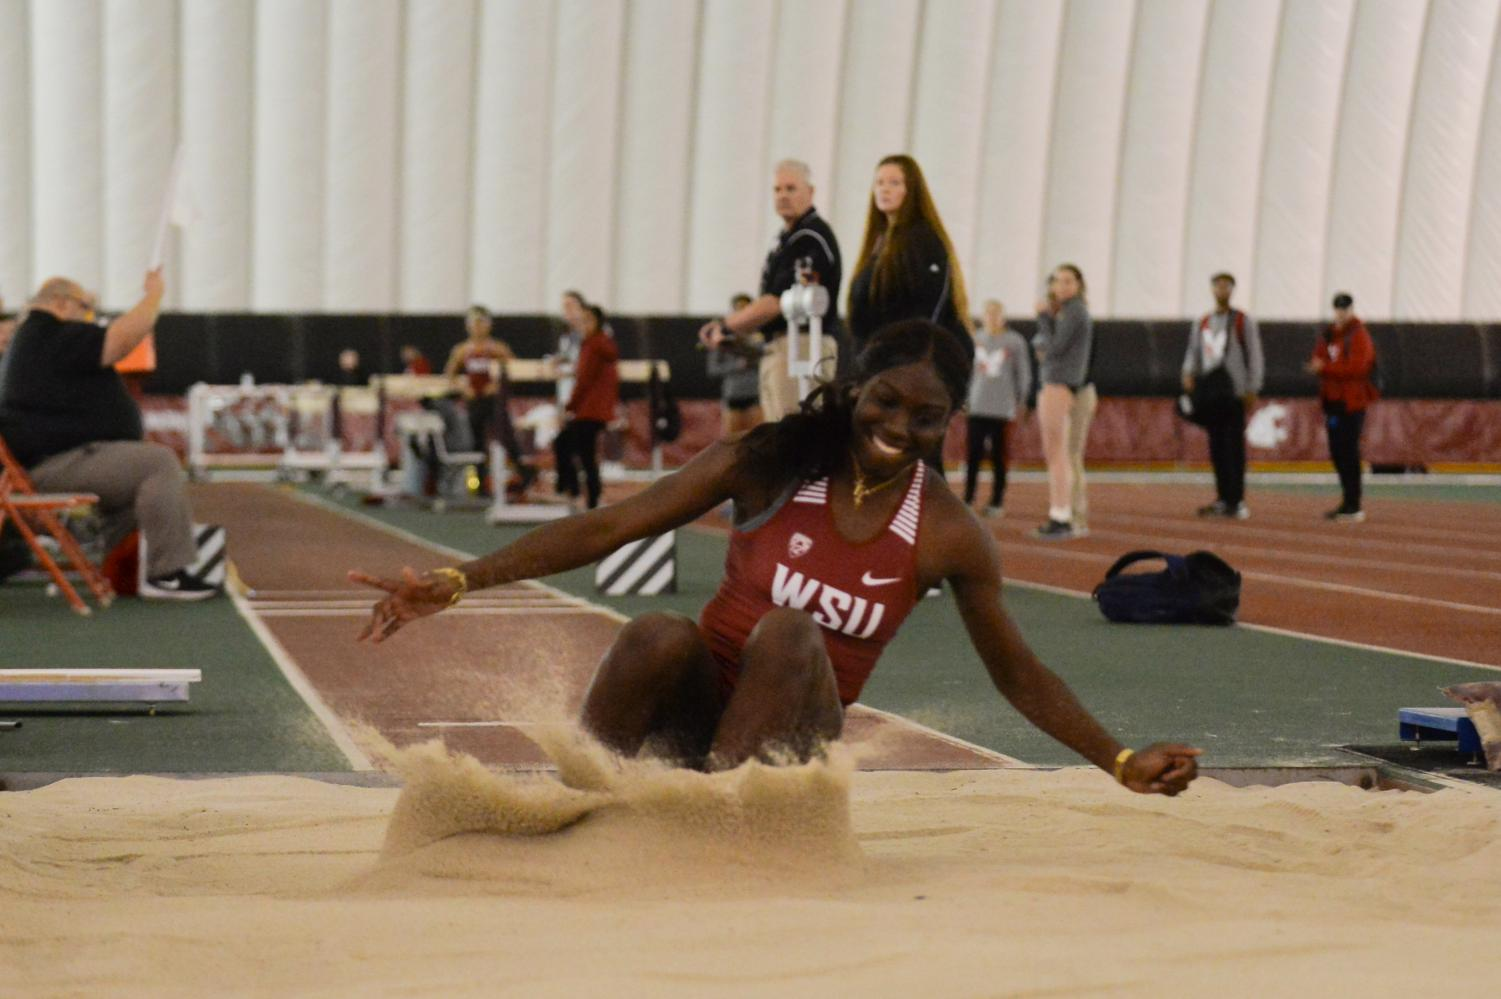 Freshman triple jump Charisma Taylor completes a successful jump at the WSU Open Indoor Open on Friday at the Indoor Practice Facility.